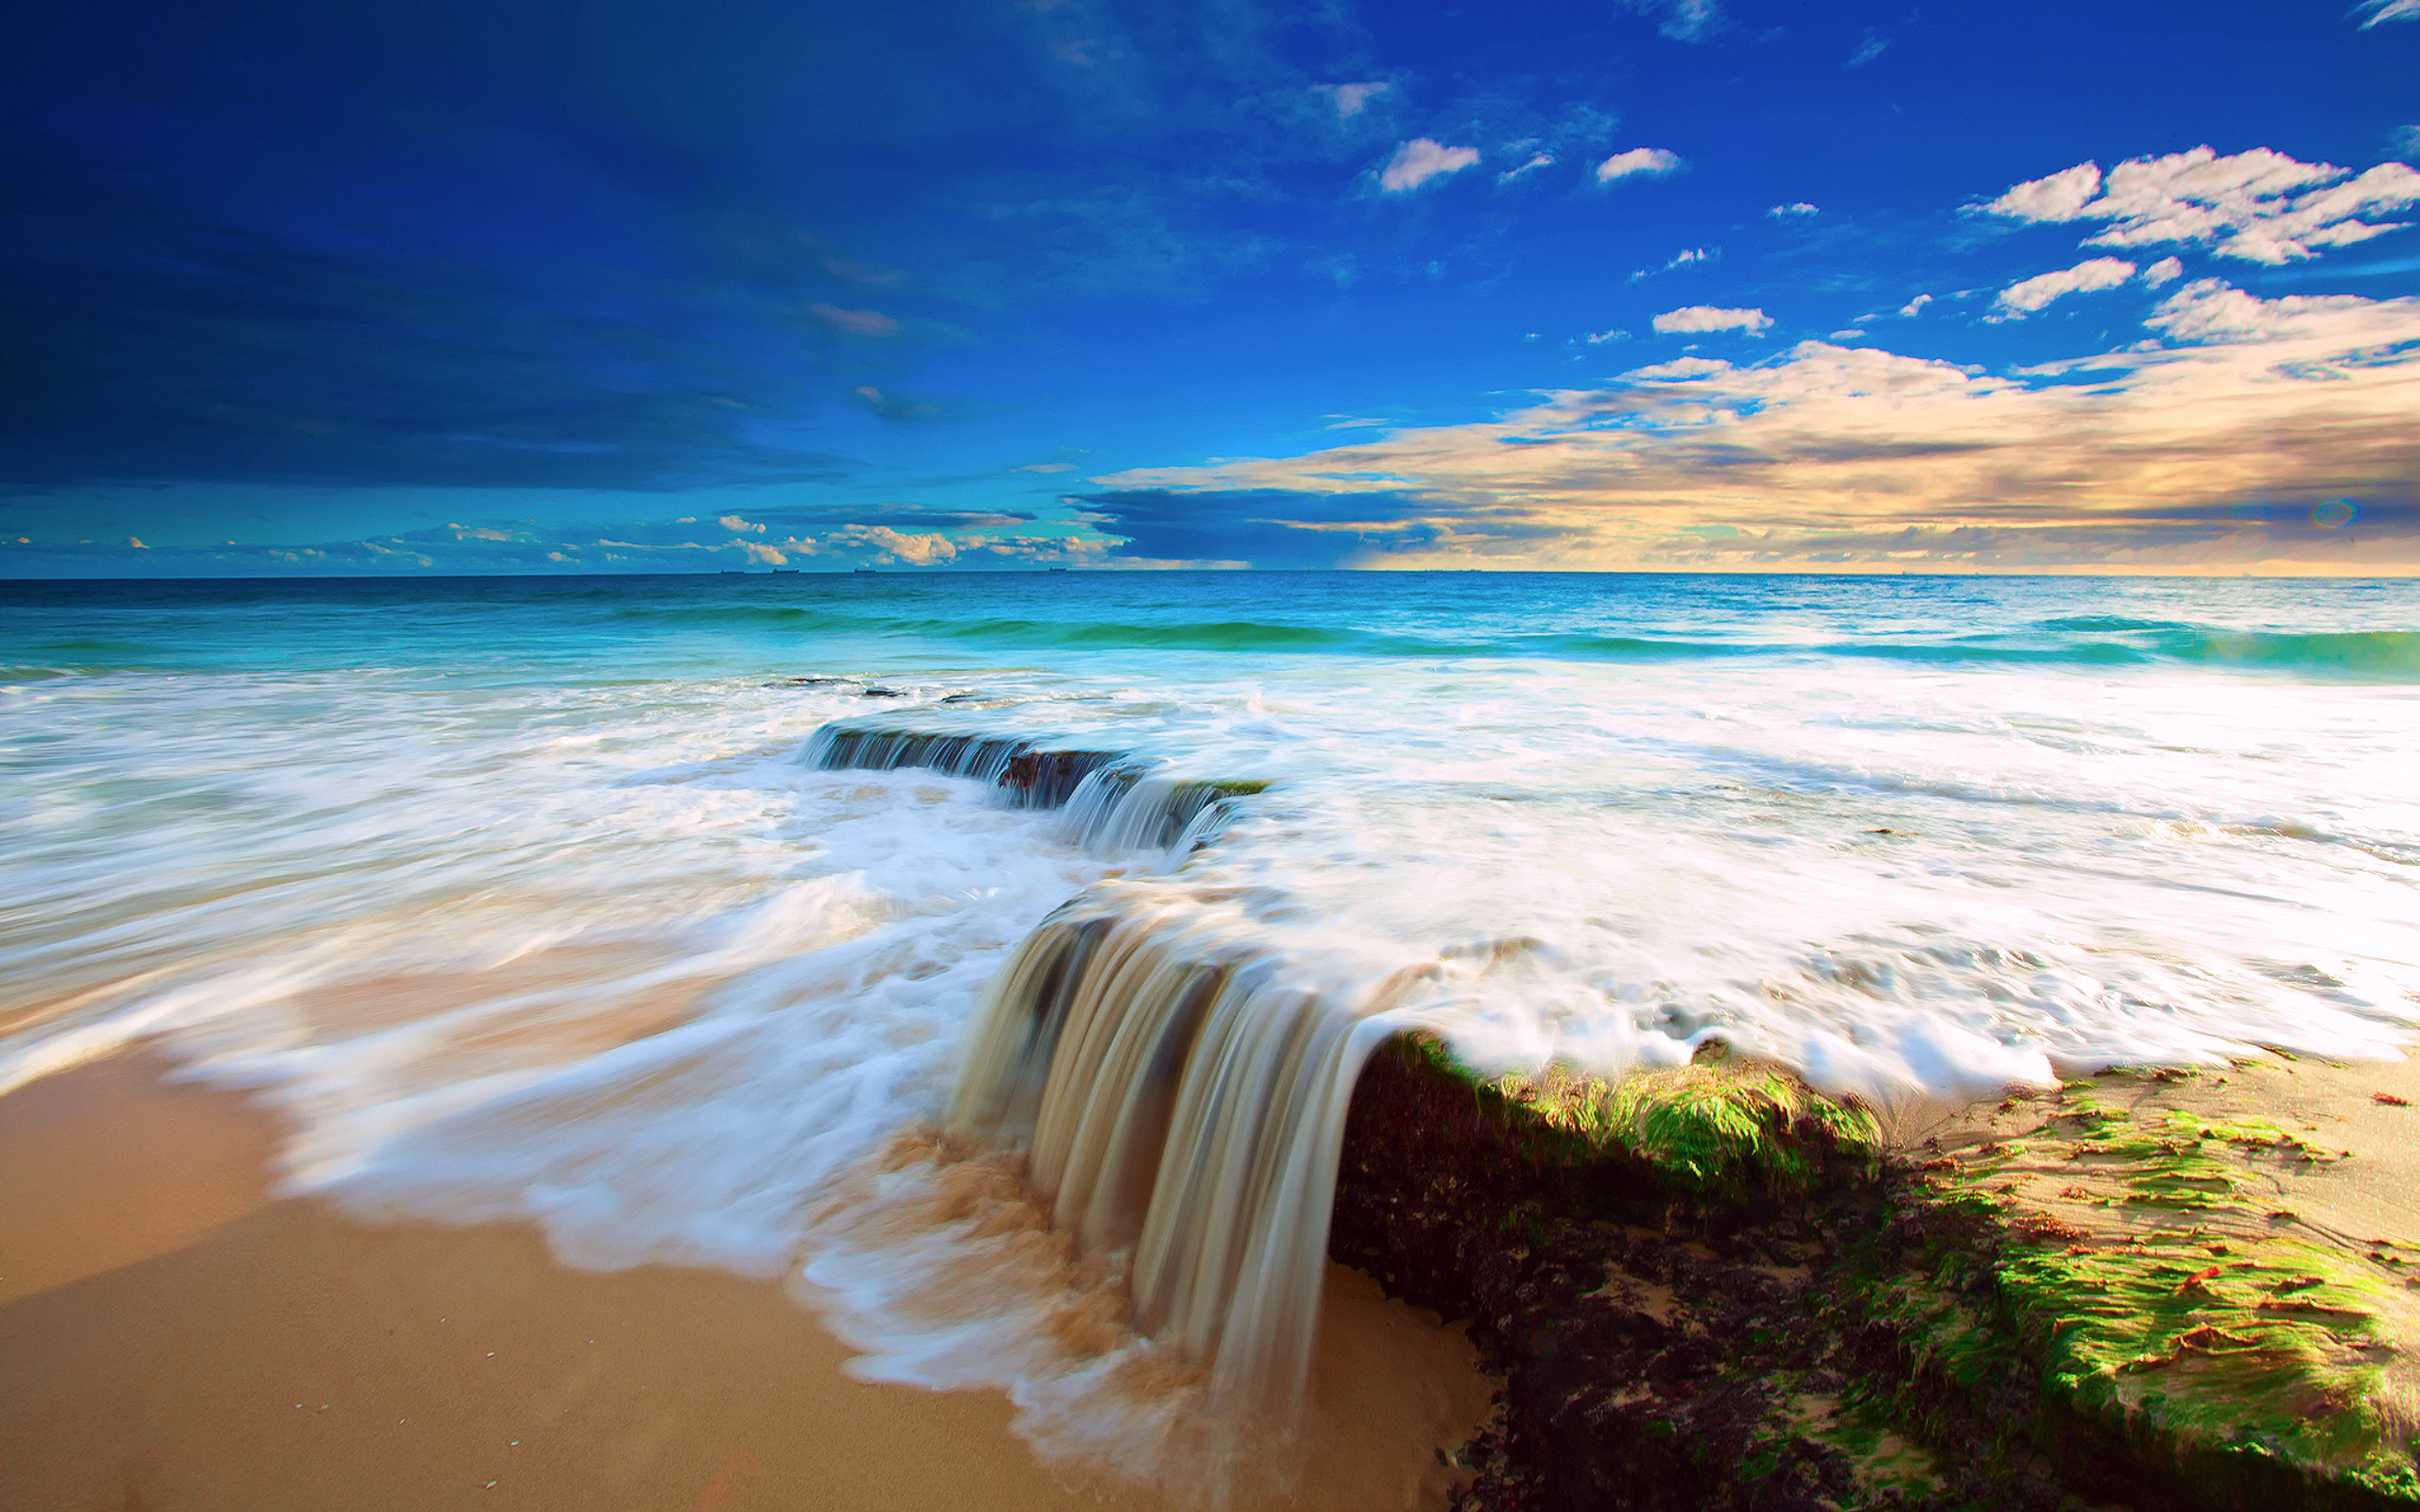 Ocean Scenery Wallpaper